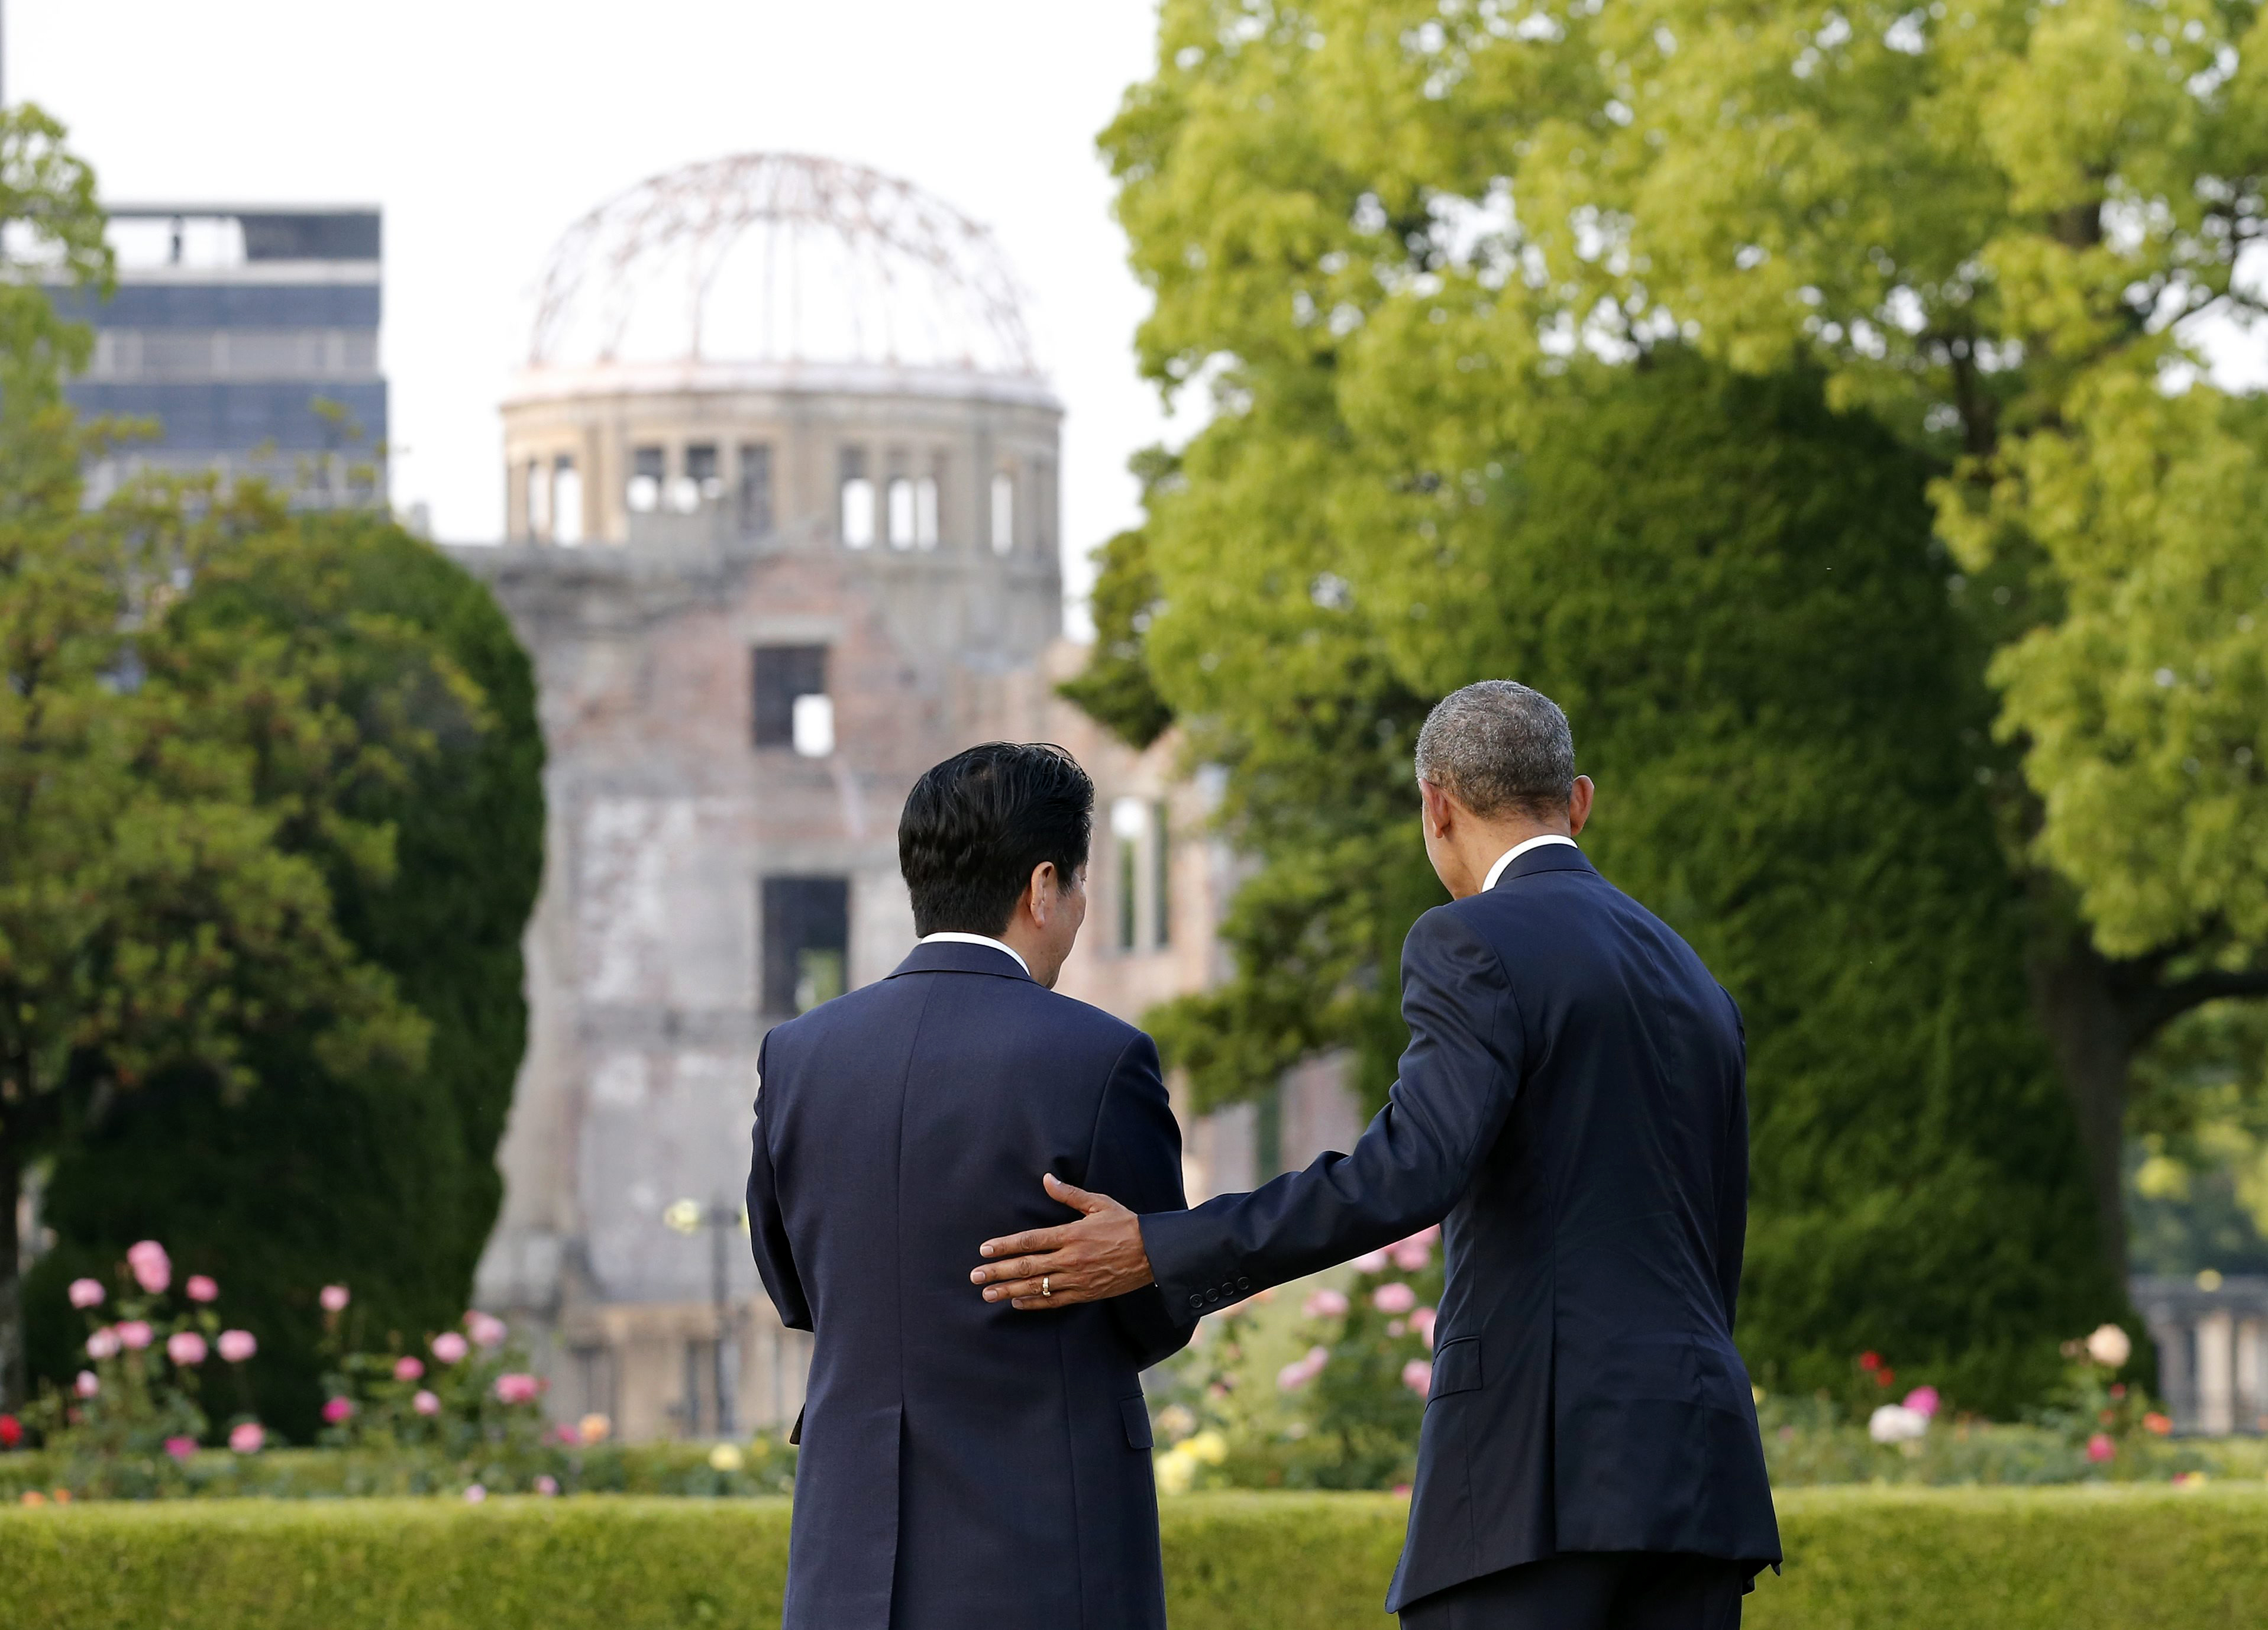 U.S. Presdent Barack Obama puts his hand on the back of Japanese Prime Minister Shinzo Abe at Hiroshima Peace Memorial Park, viewing the Atomic Bomb Dome in Hiroshima, western Japan, May 27, 2016.